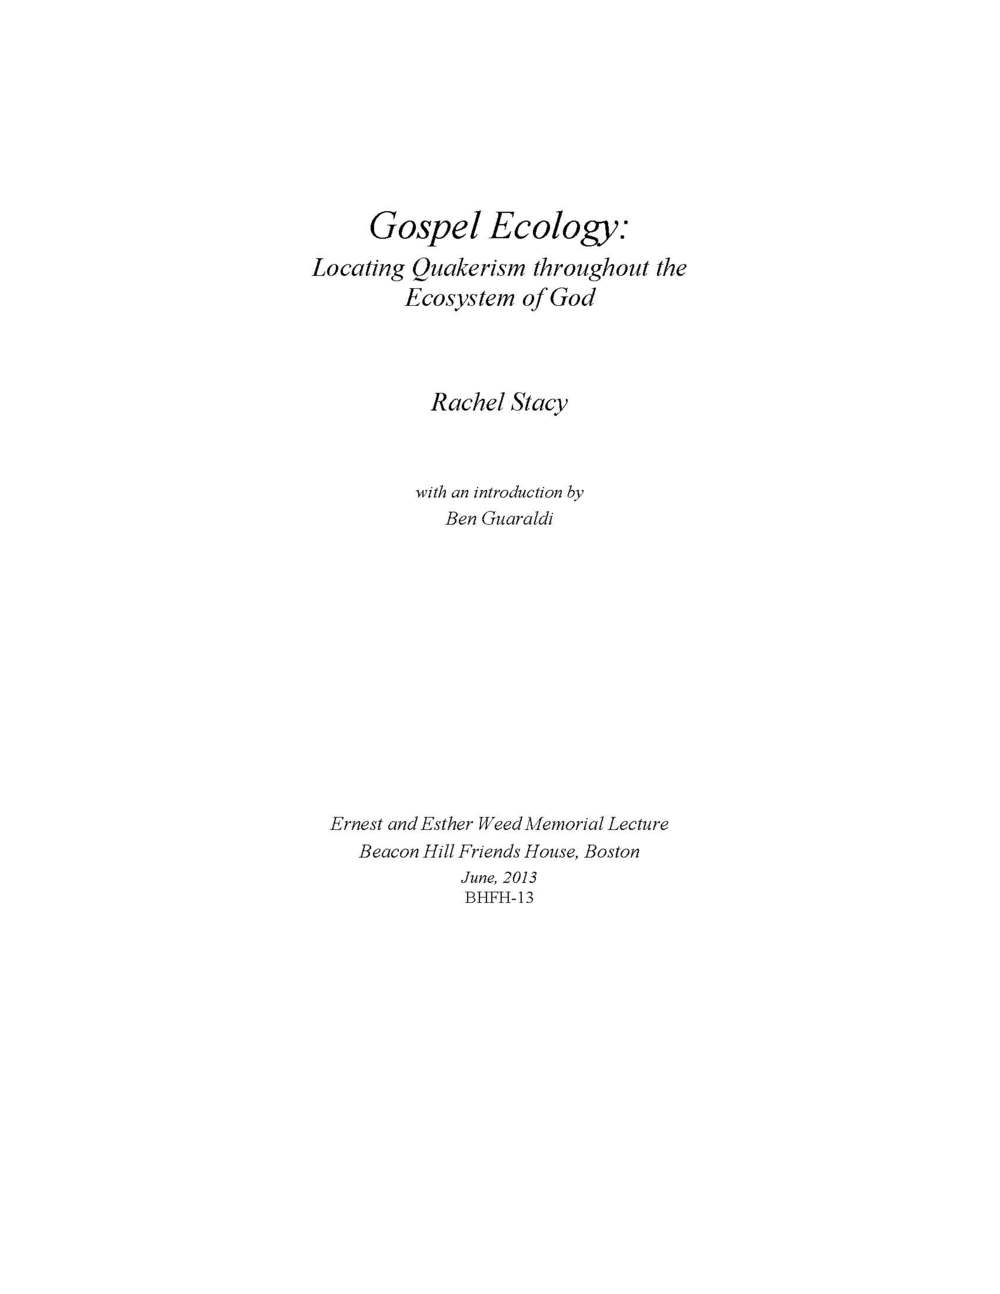 Pages from StacyGospel Ecologyformatted.jpg